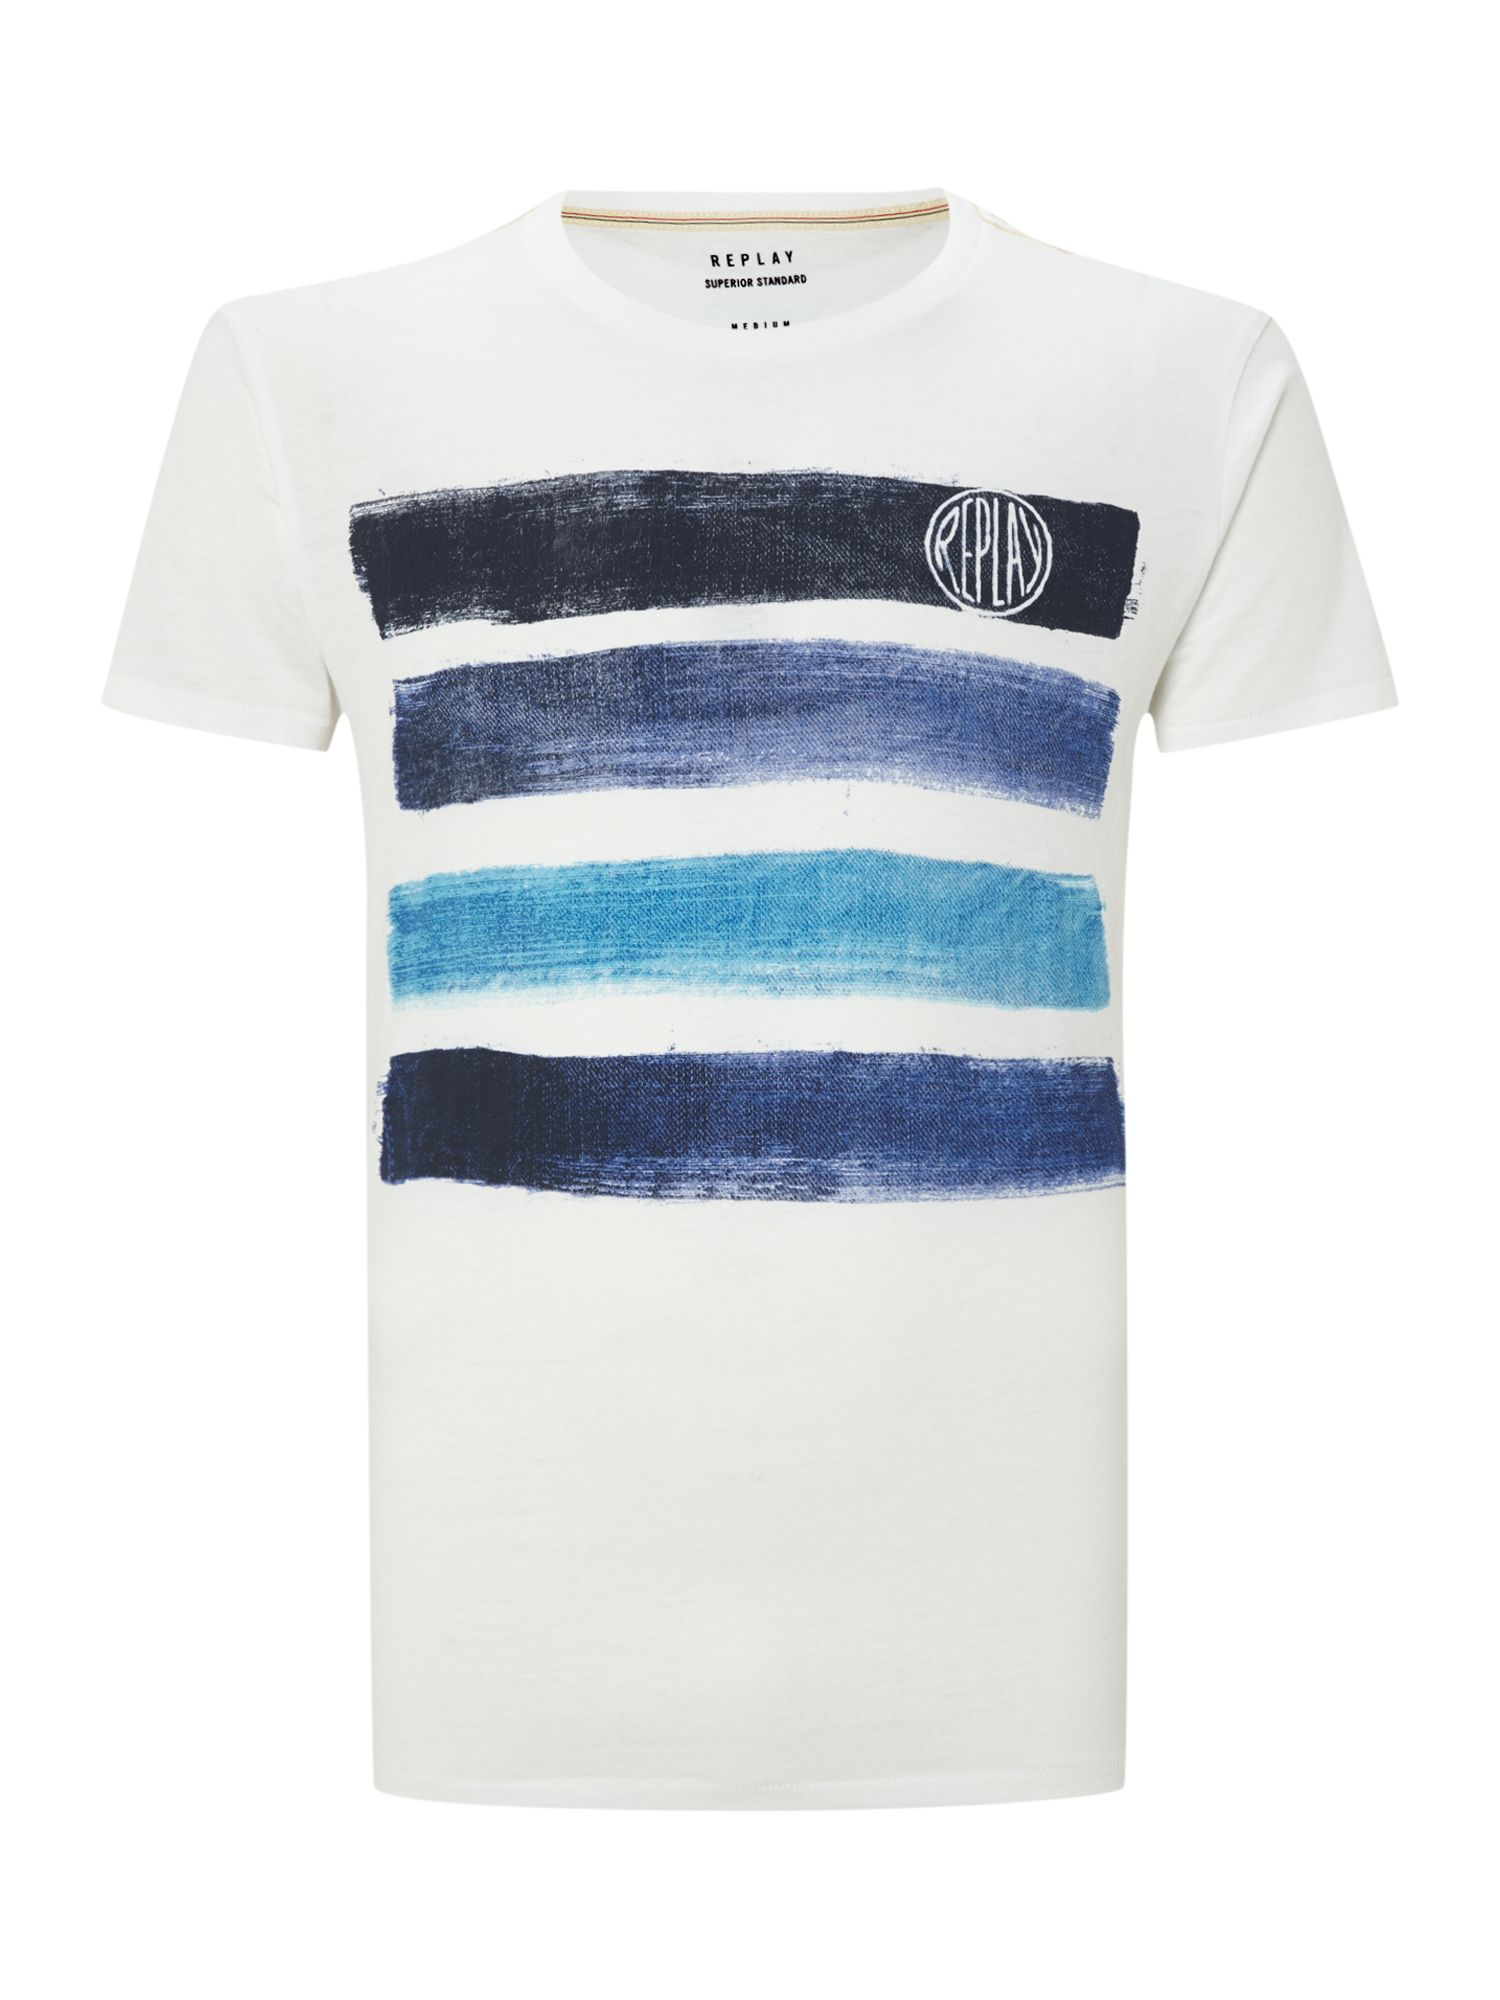 Regular fit tshirt with rib crew neck